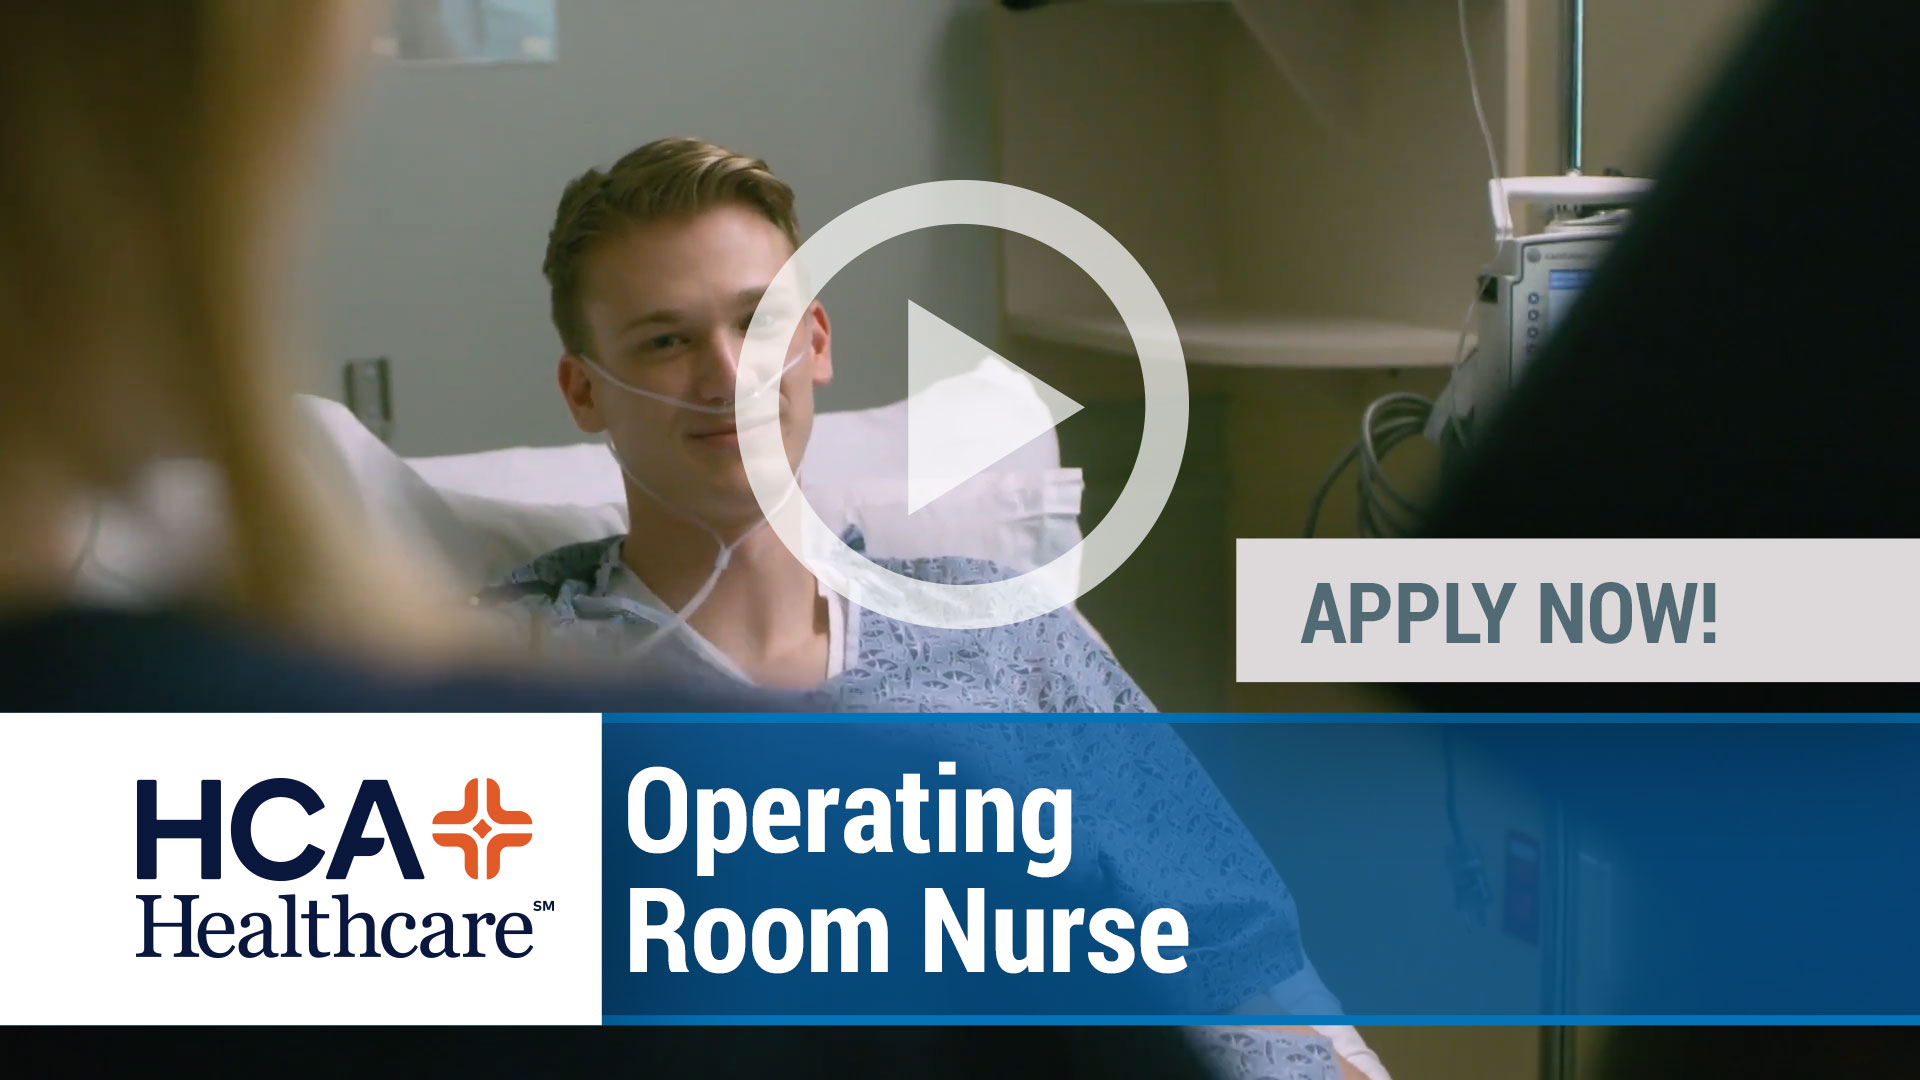 Watch our careers video for available job opening Operating Room Nurse in Pasadena, Texas